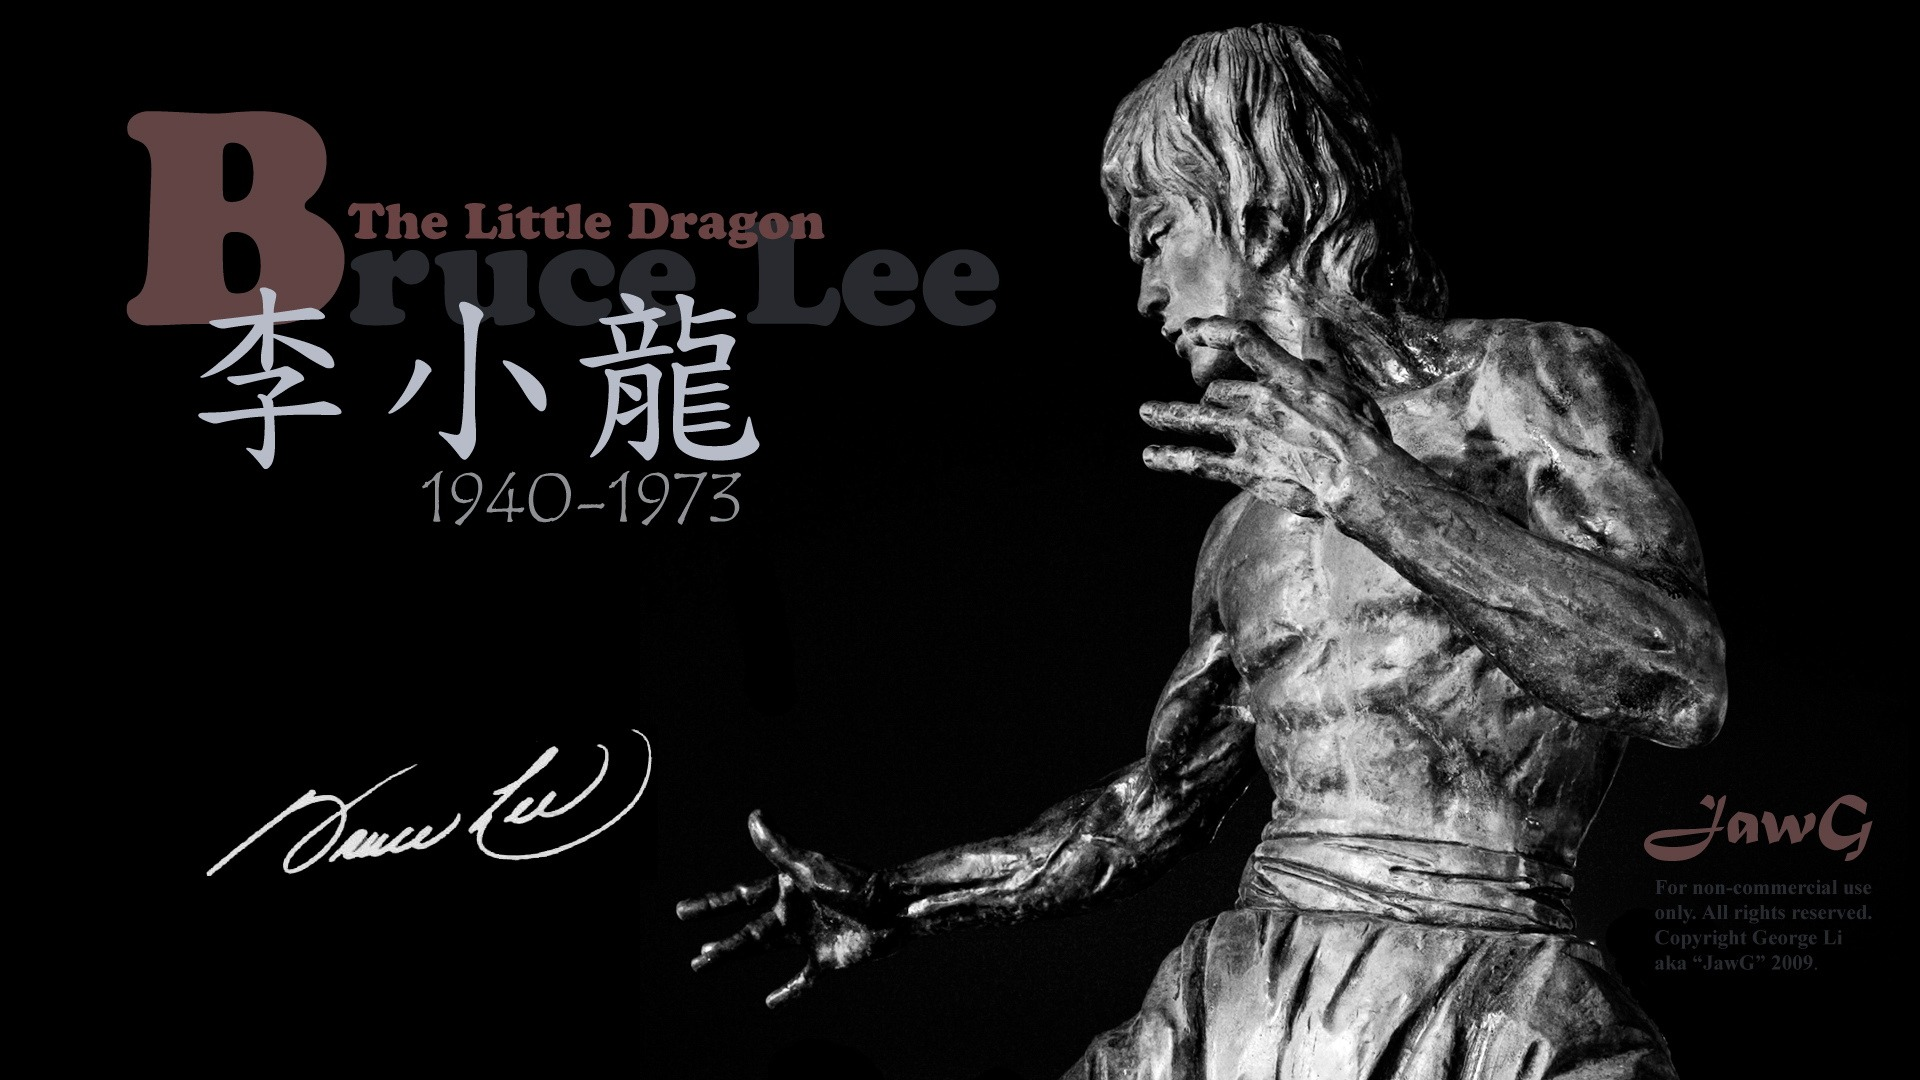 Bruce Lee Art HD Desktop Wallpaper_1920x1080